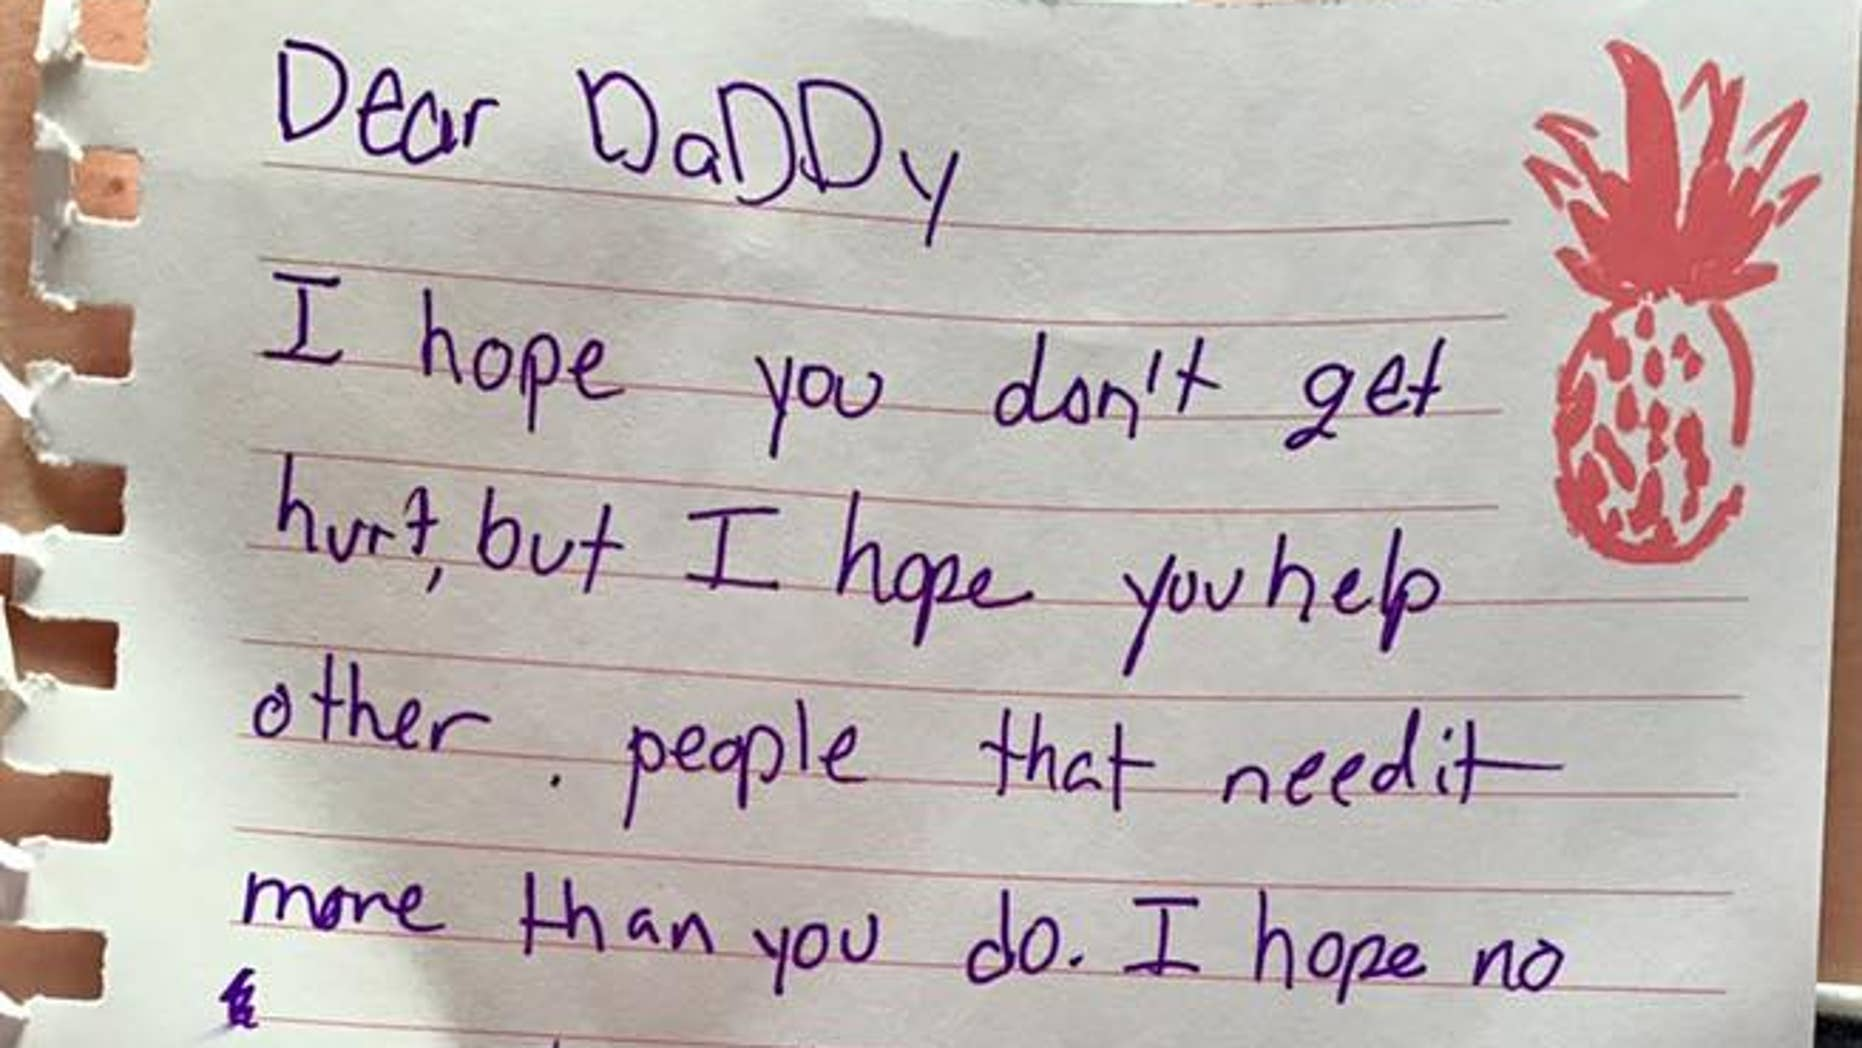 The children of a Texas police officer wrote their father a heartfelt note as he left to help victims of Harvey.